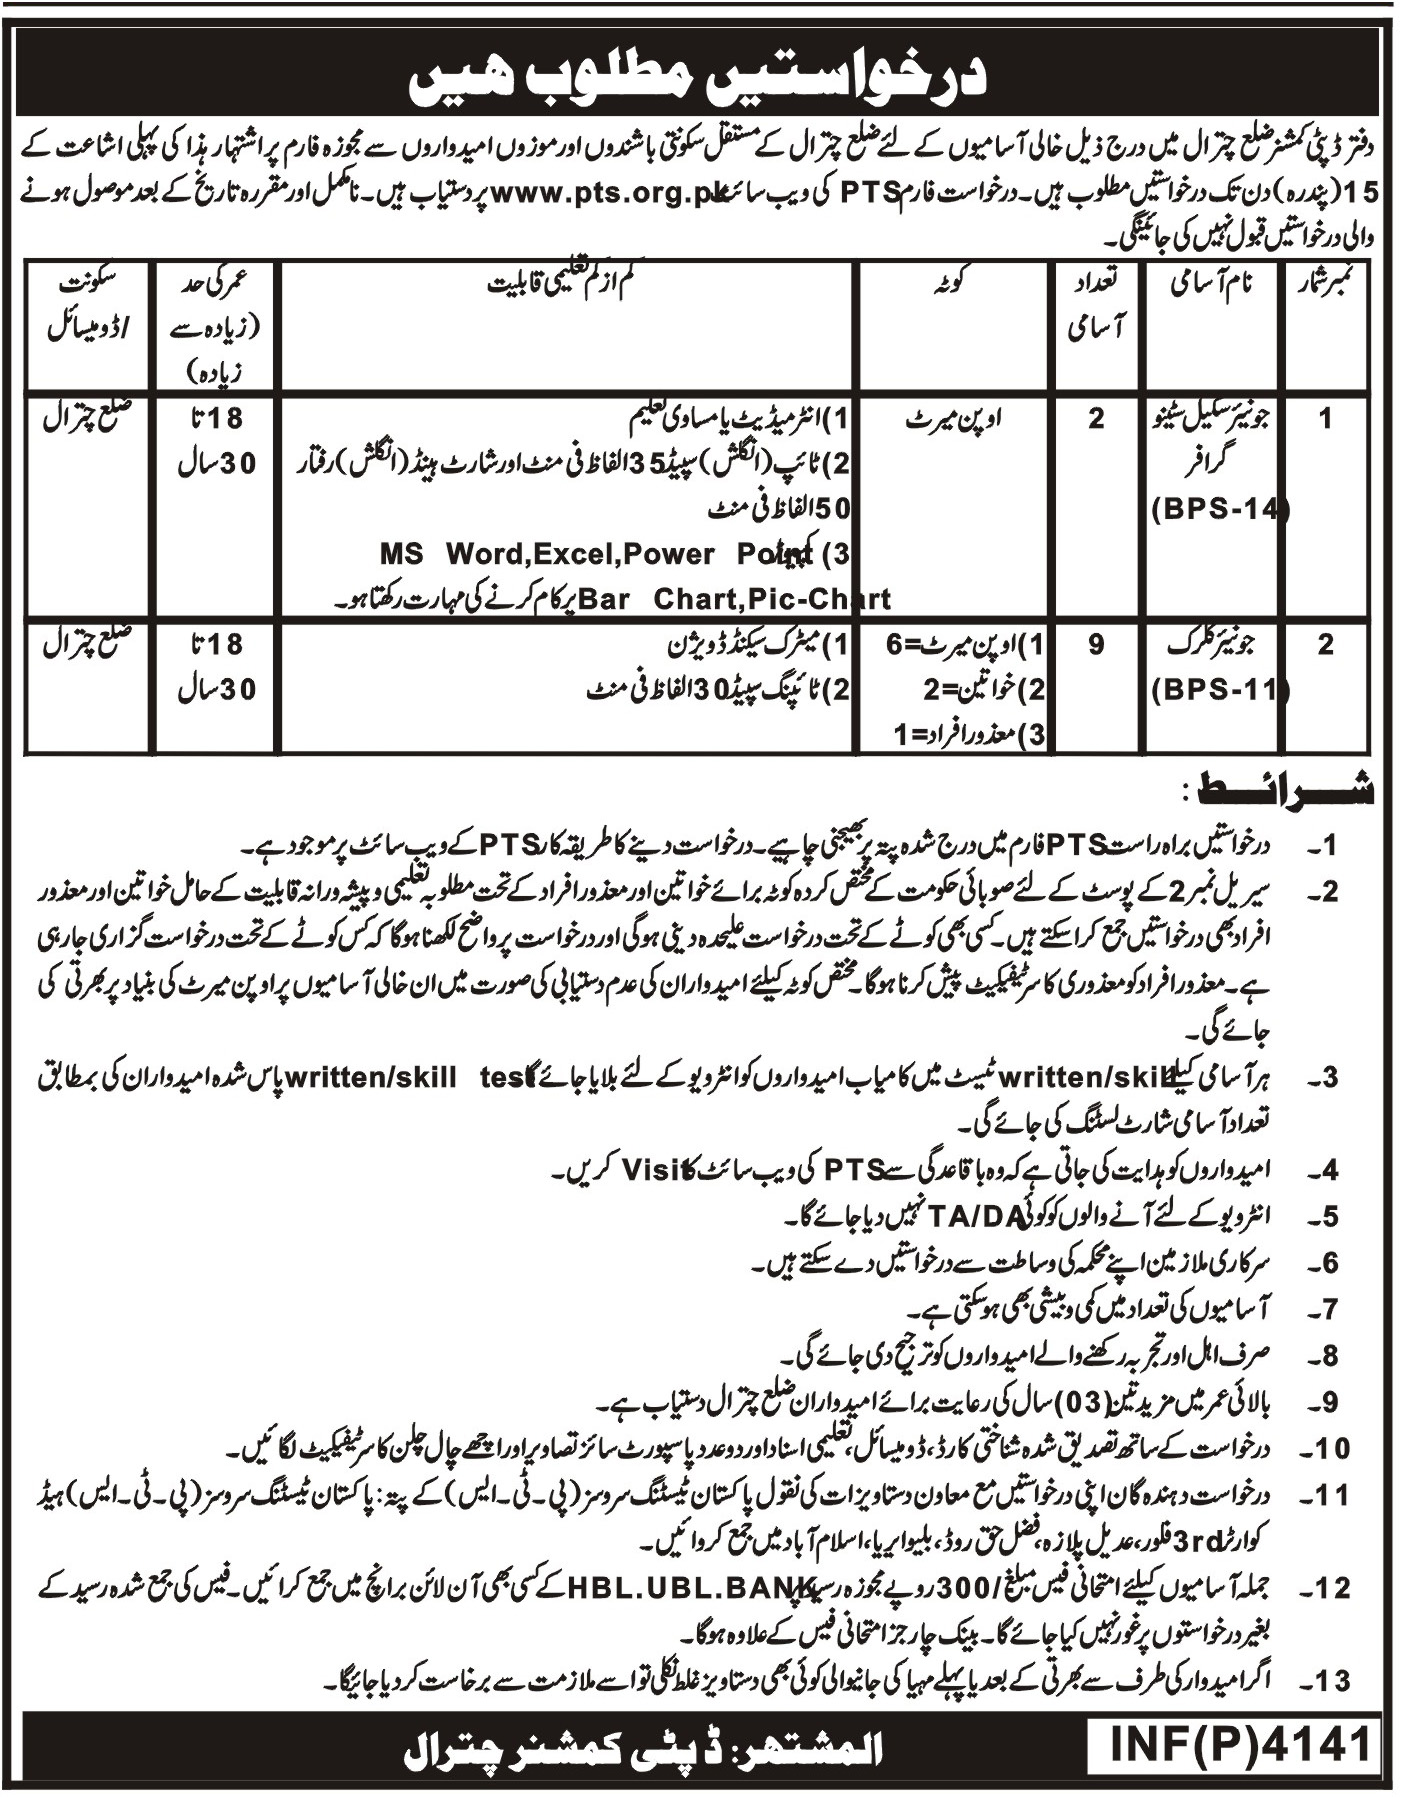 Deputy Commissioner Office Chitral Jobs